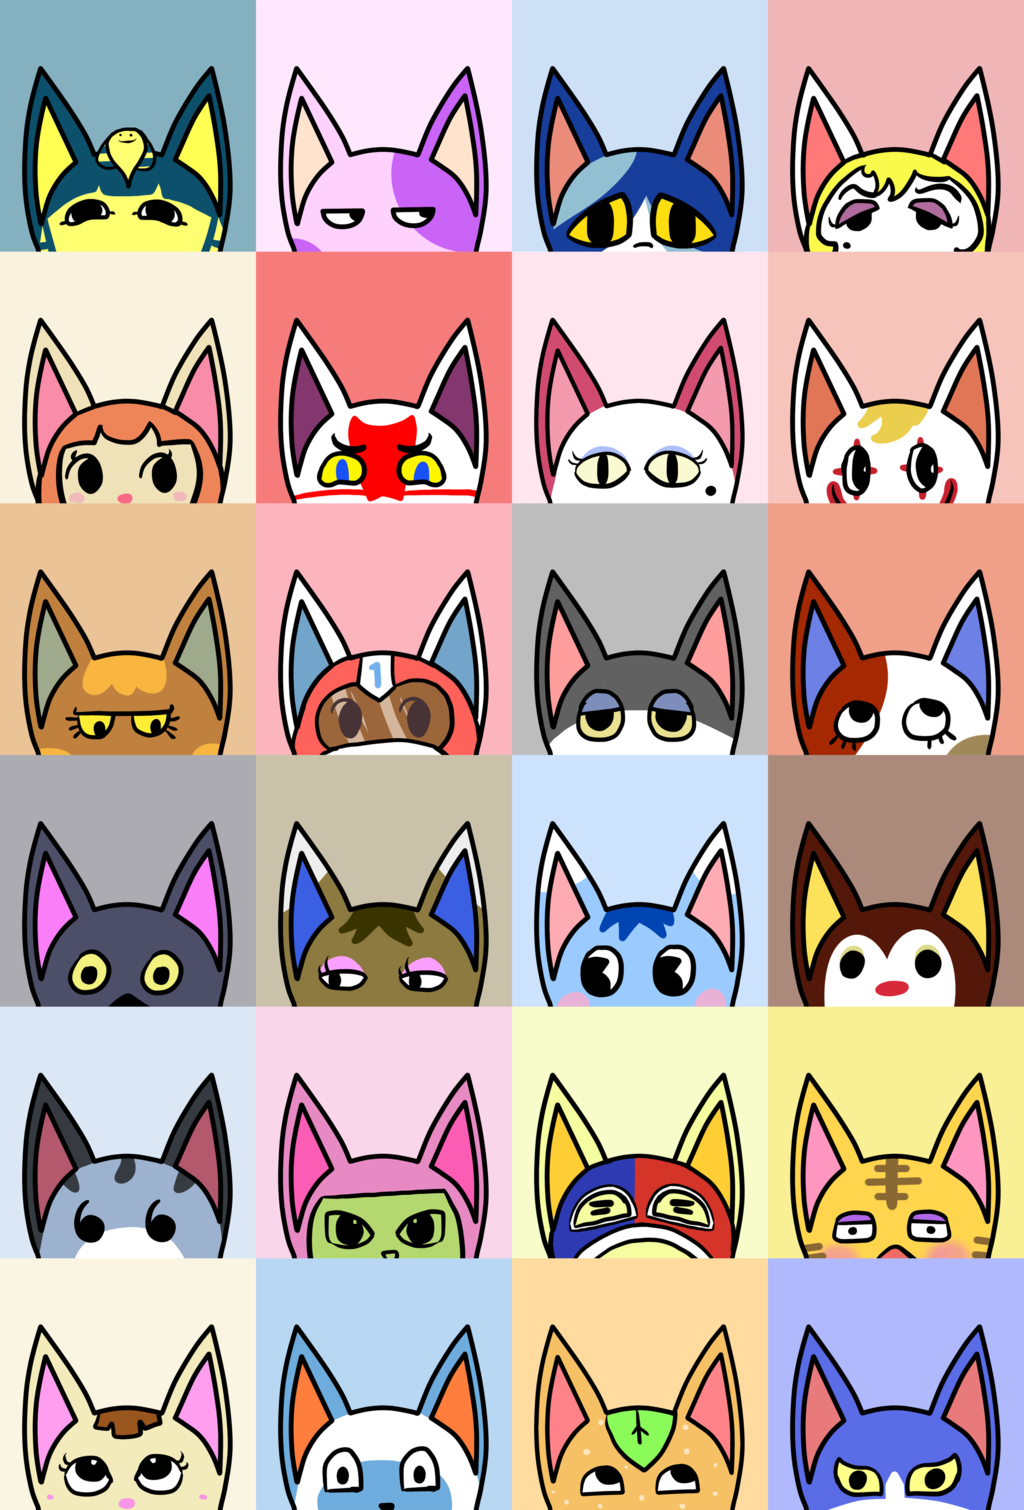 Animal Crossing New Leaf (ACNL) cats! Animal crossing